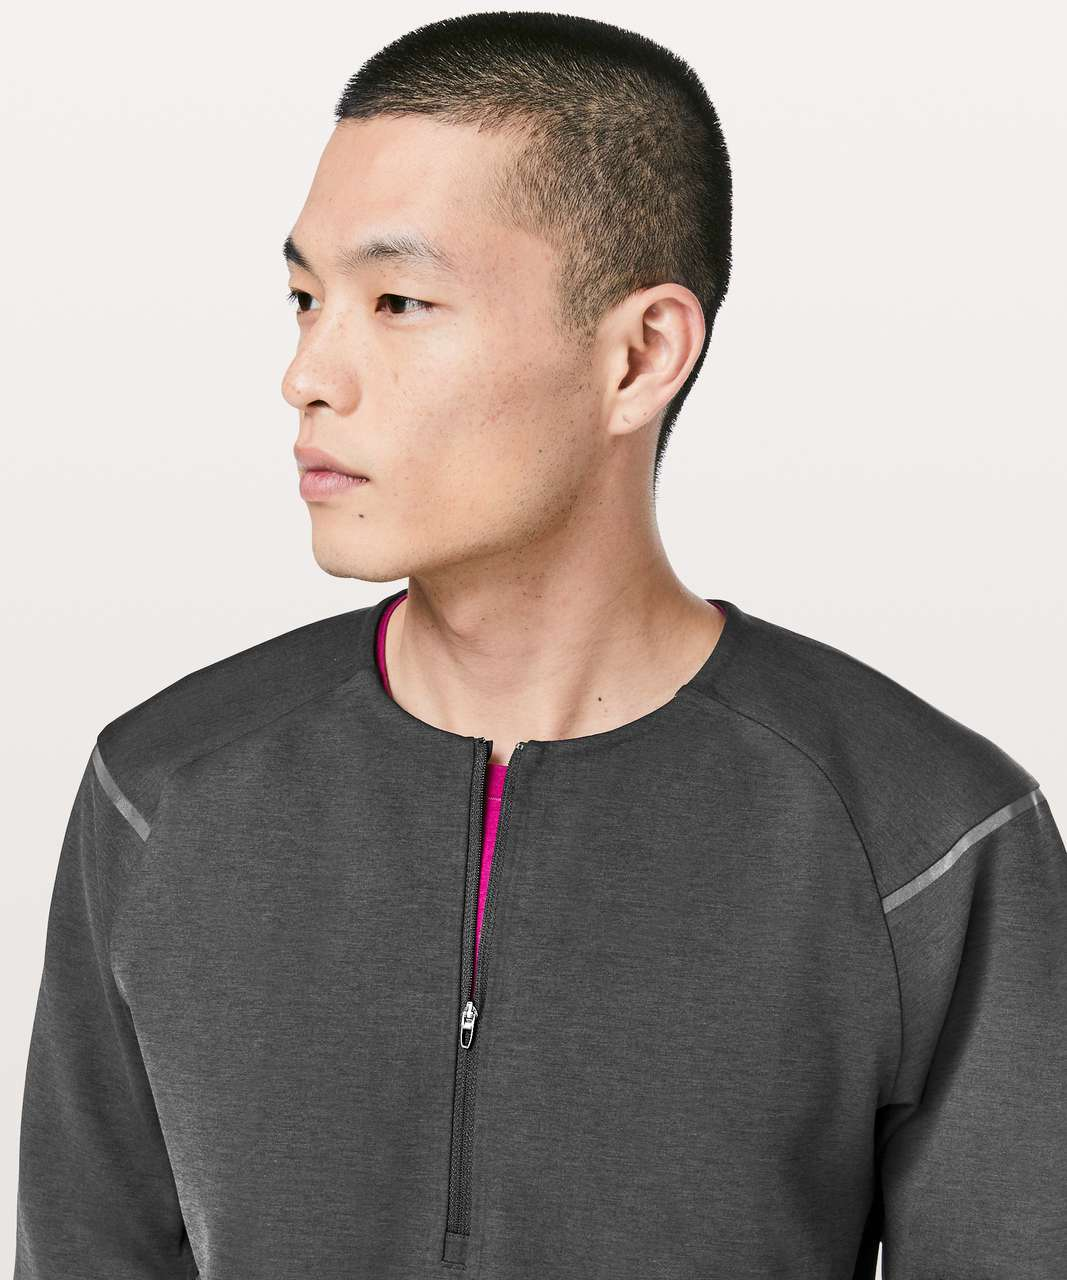 Lululemon Diffract 1/2 Zip Pullover *lululemon lab - Deep Coal